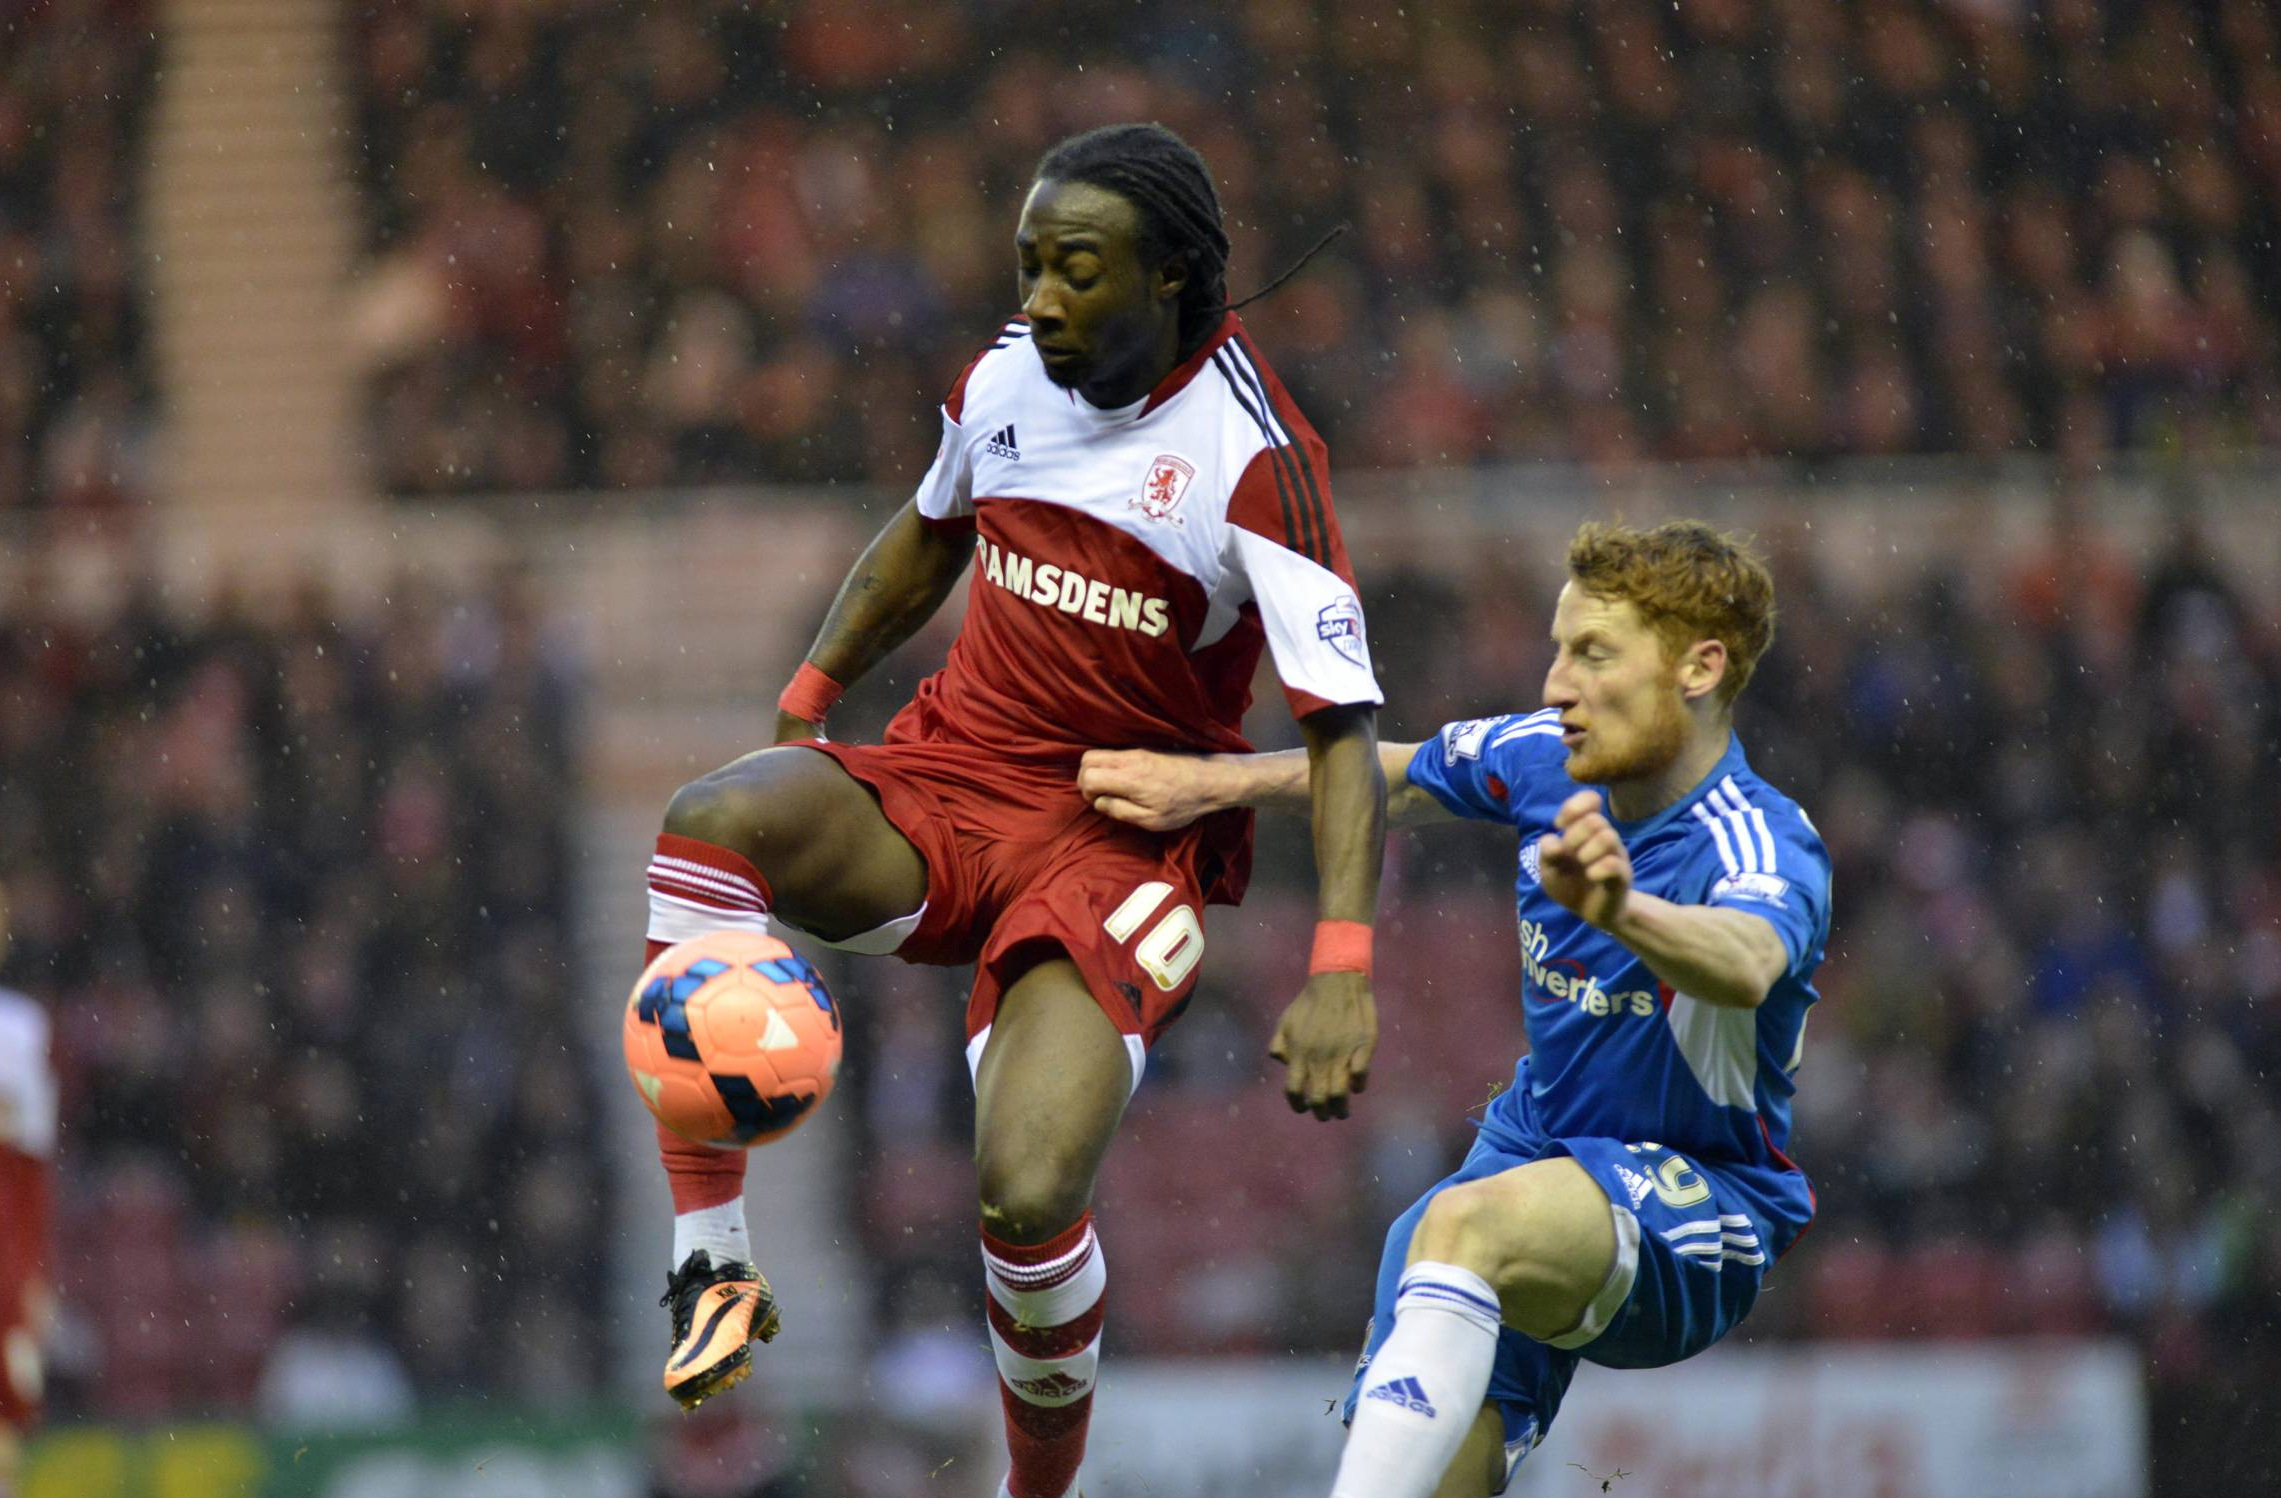 Emnes out, with Tomlin and Graham in at Boro